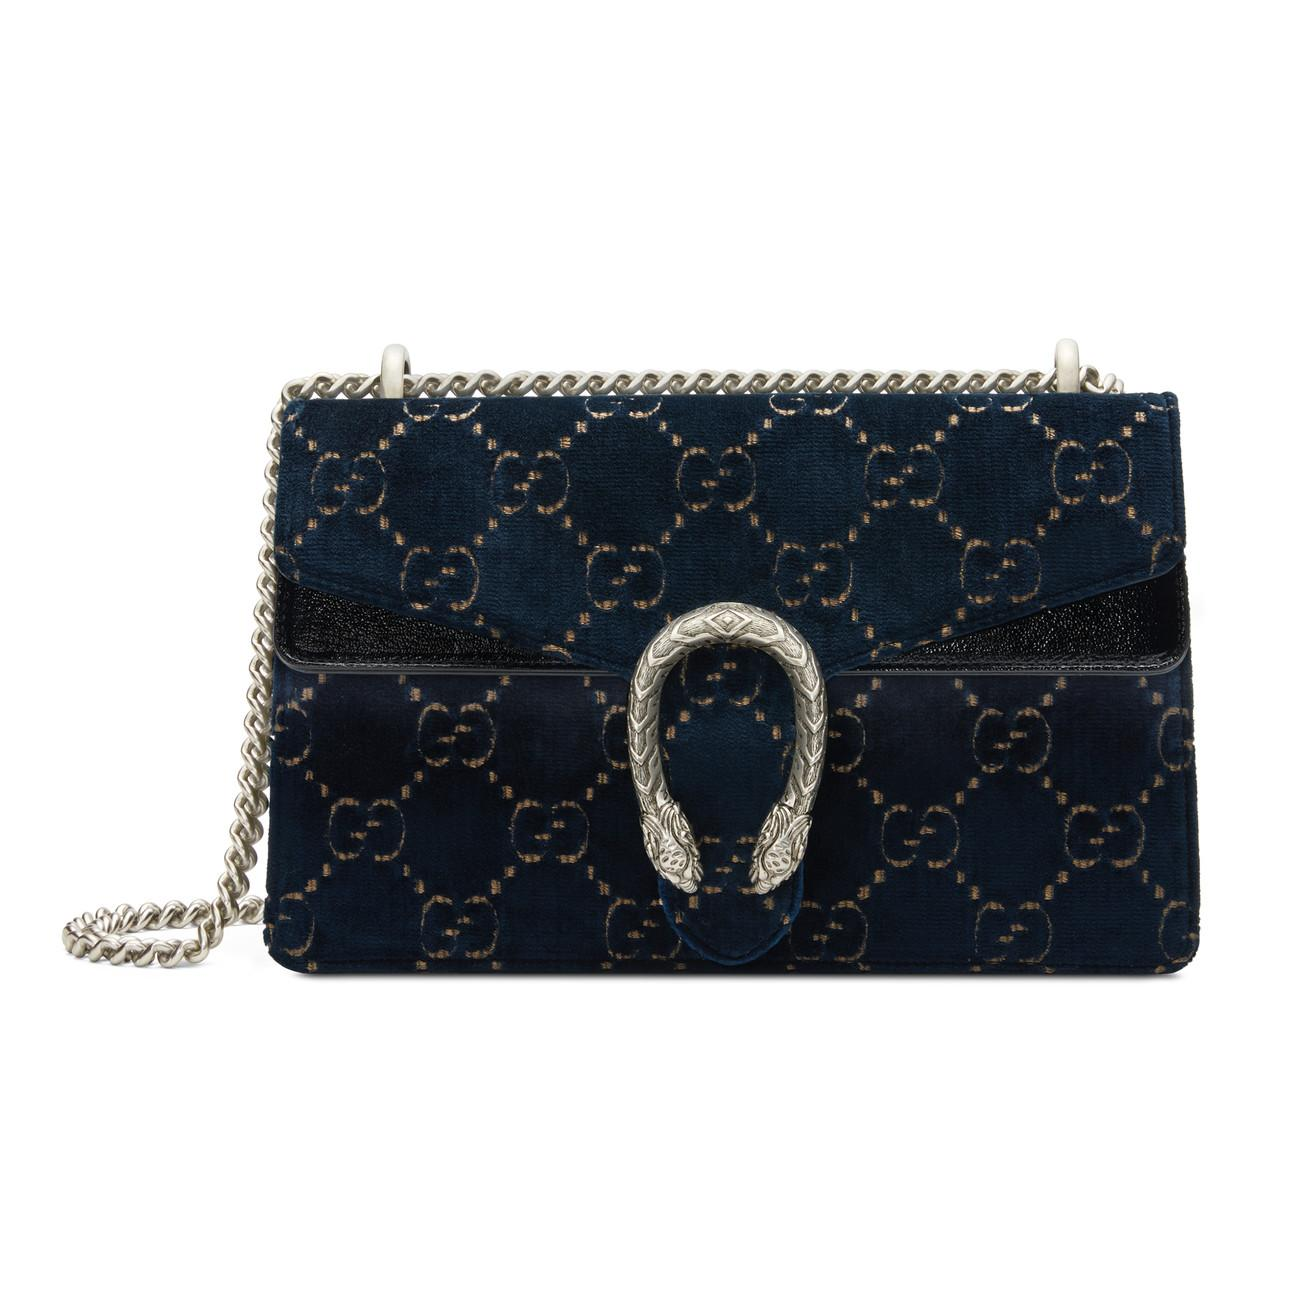 b910a3701744 Gucci Dionysus GG Velvet Small Shoulder Bag in Blue - Lyst